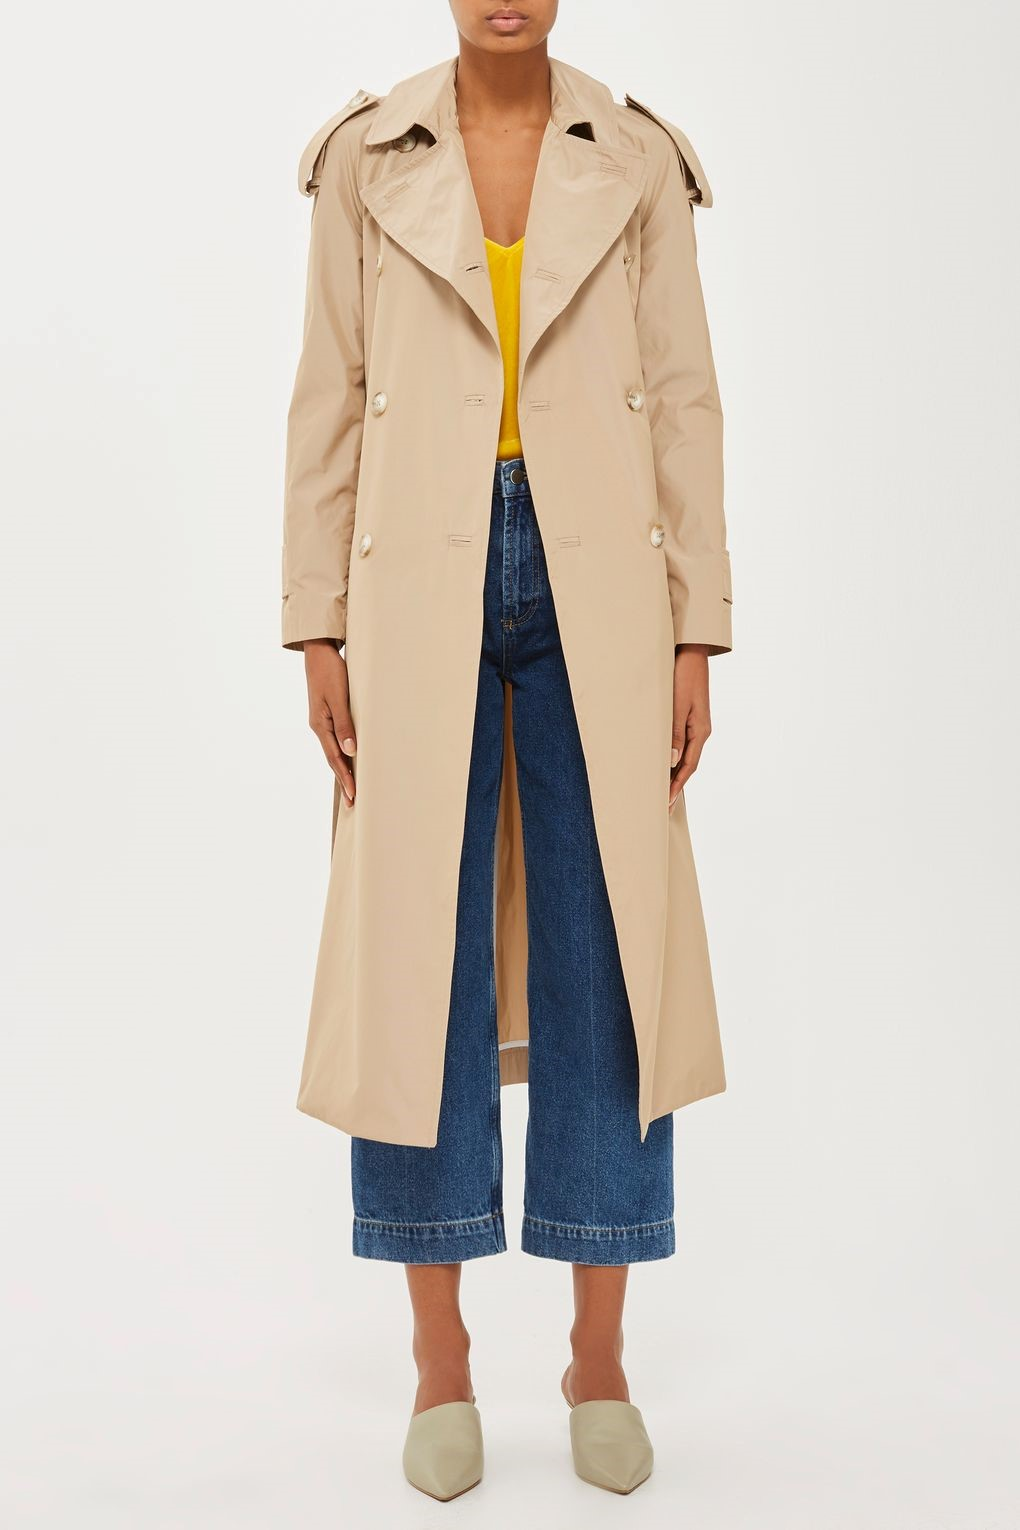 £160 from  Topshop